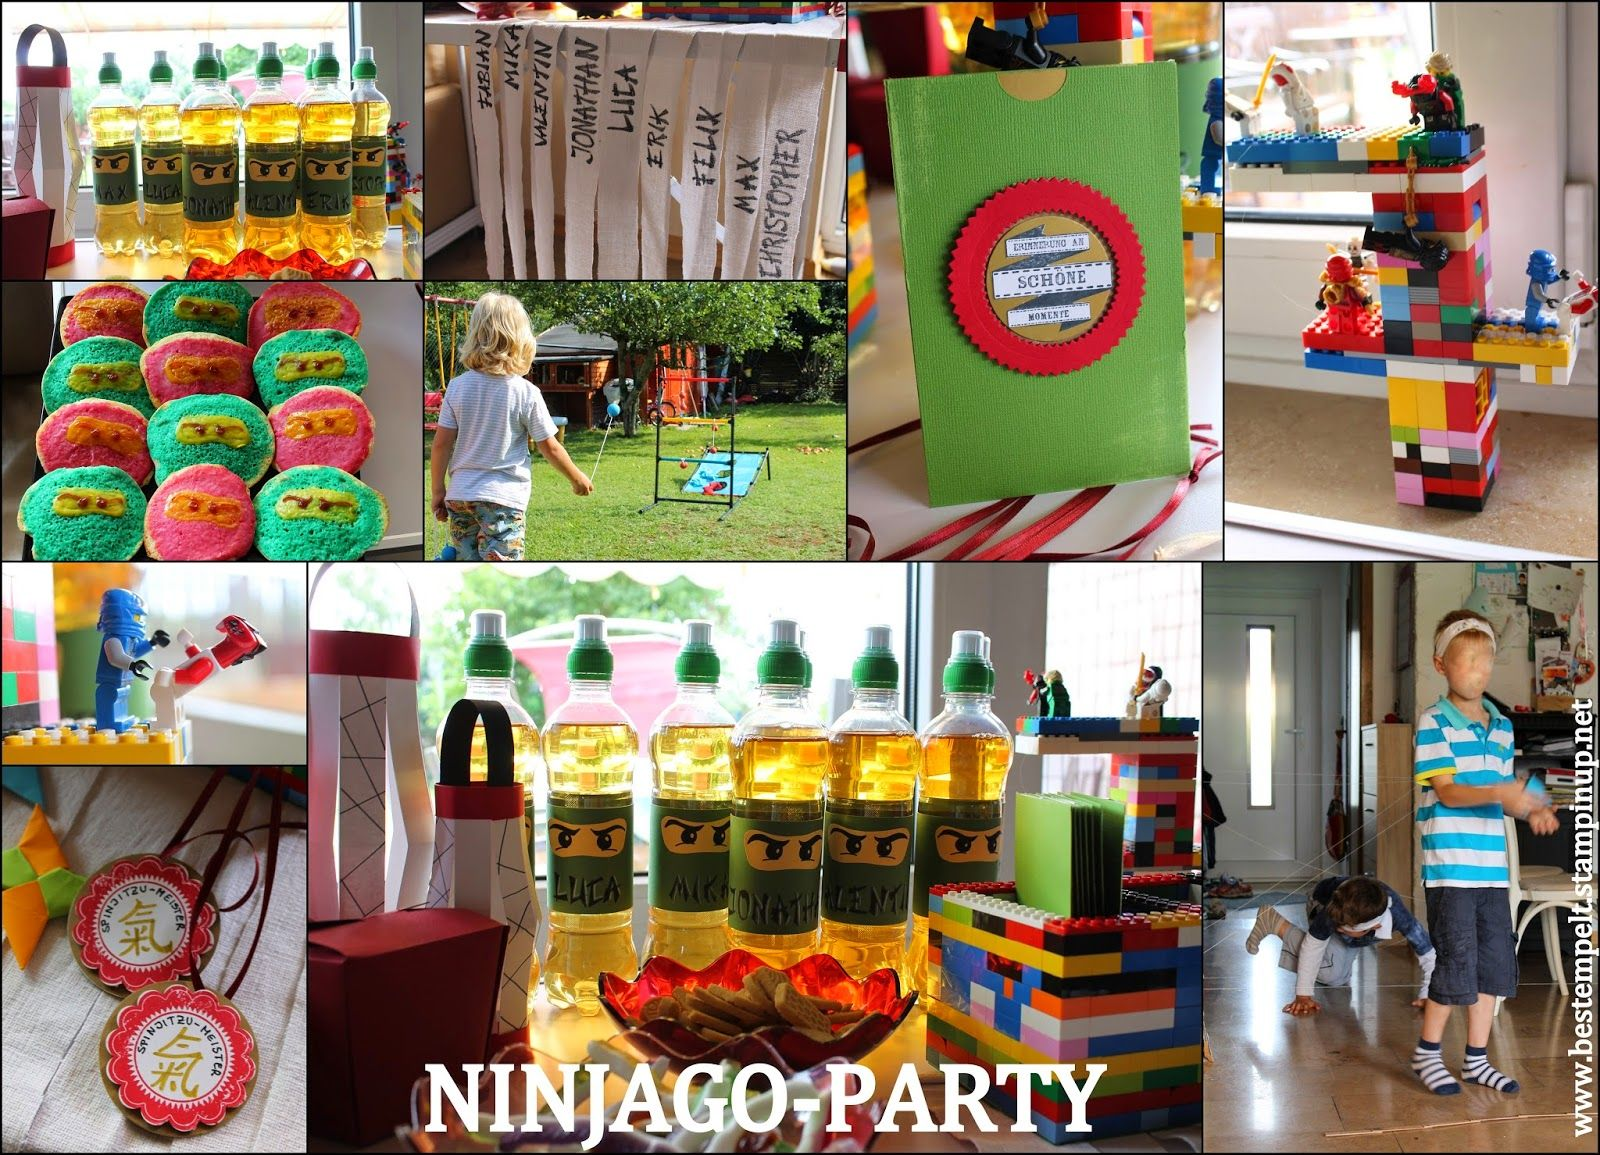 Geburtstagsparty f r ninjas ninjago party lego party for Geburtstagsparty deko